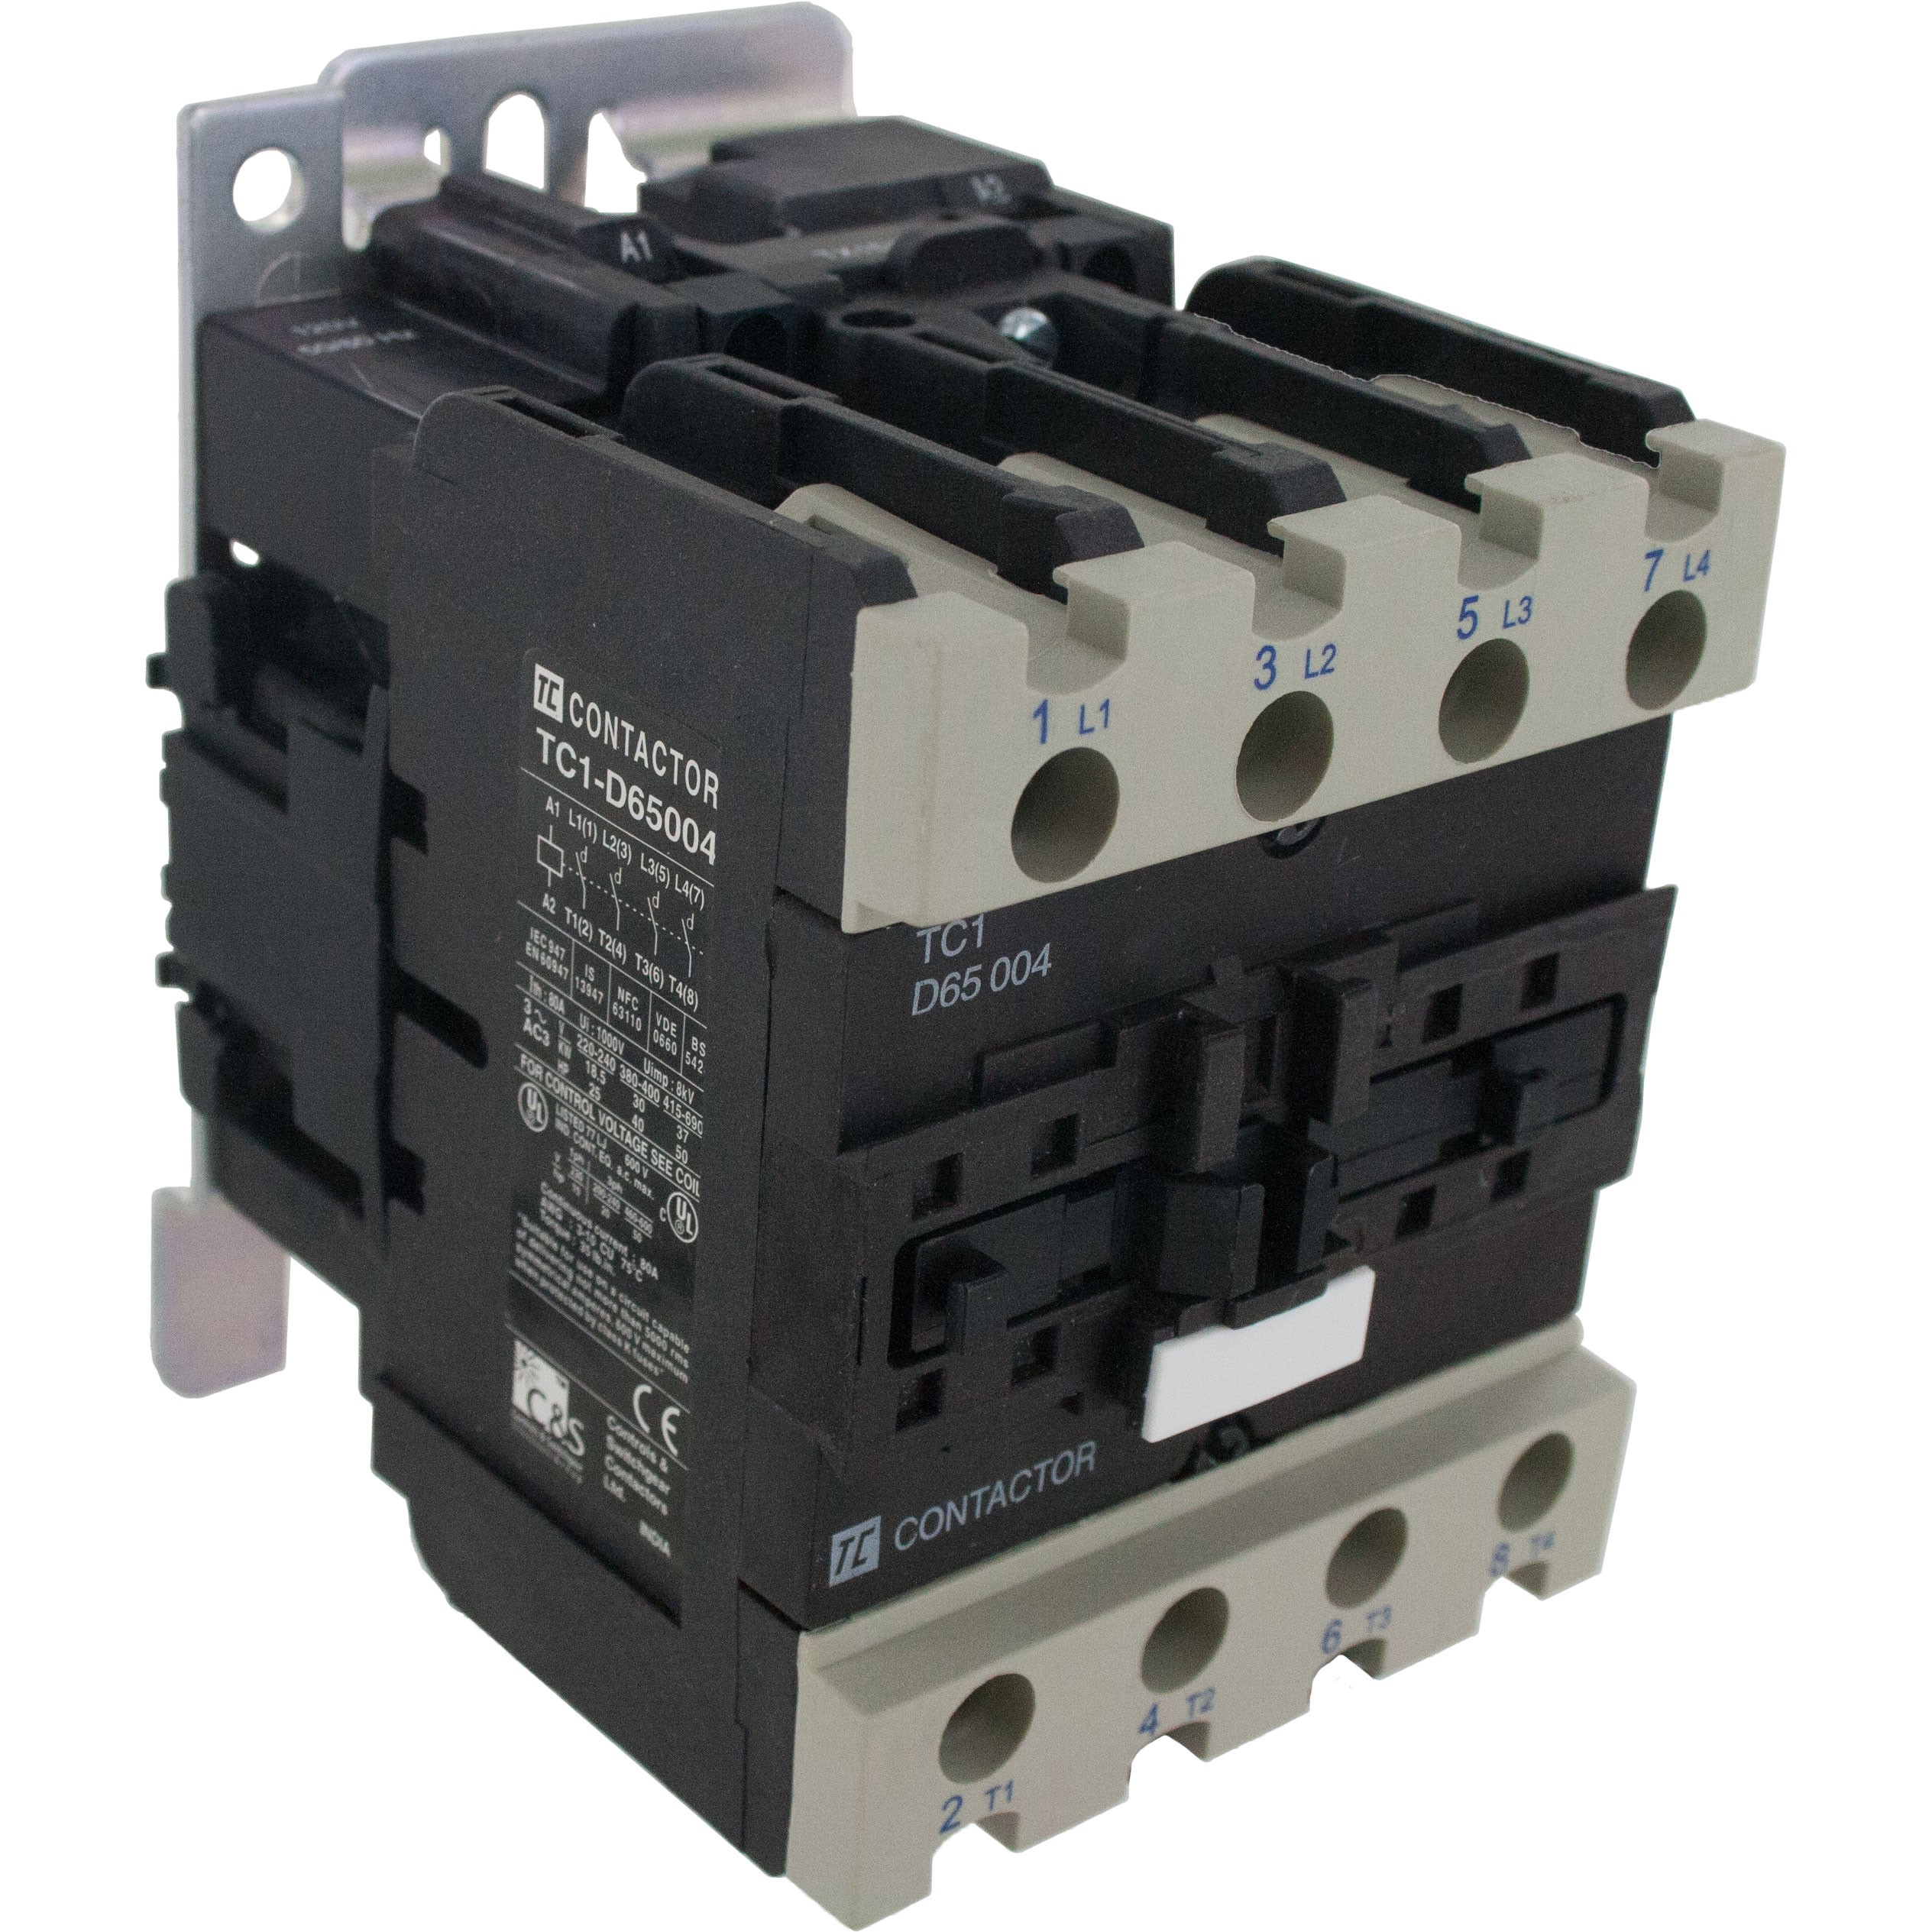 square d contactors diagram with 460 Volt 3 Phase Plug Wiring Diagram on Siemens Furnas Mag Starter Ws10 2301p Single Phase Wiring Help 246000 besides Photocell Sensor Wiring Diagram moreover Use 3 Pole Reversing Contactor 1 Phase 220 A 233556 likewise Square D Nema Size 1 Starter Wiring Diagram also 240 Volt Contactor Wiring Diagram.